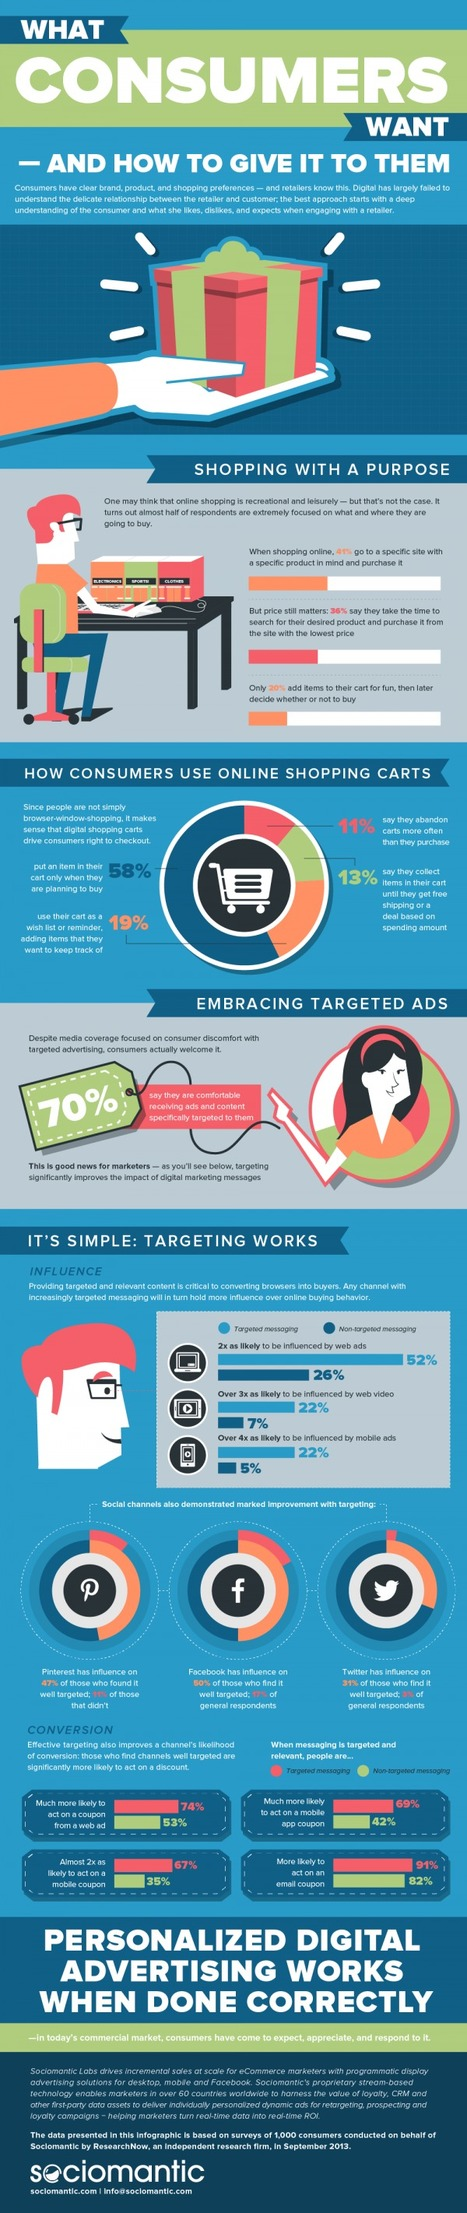 E-commerce survey on buyer behaviour and ad preferences [Infographic} - Smart Insights Digital Marketing Advice | Consumer Behavior in Digital Environments | Scoop.it